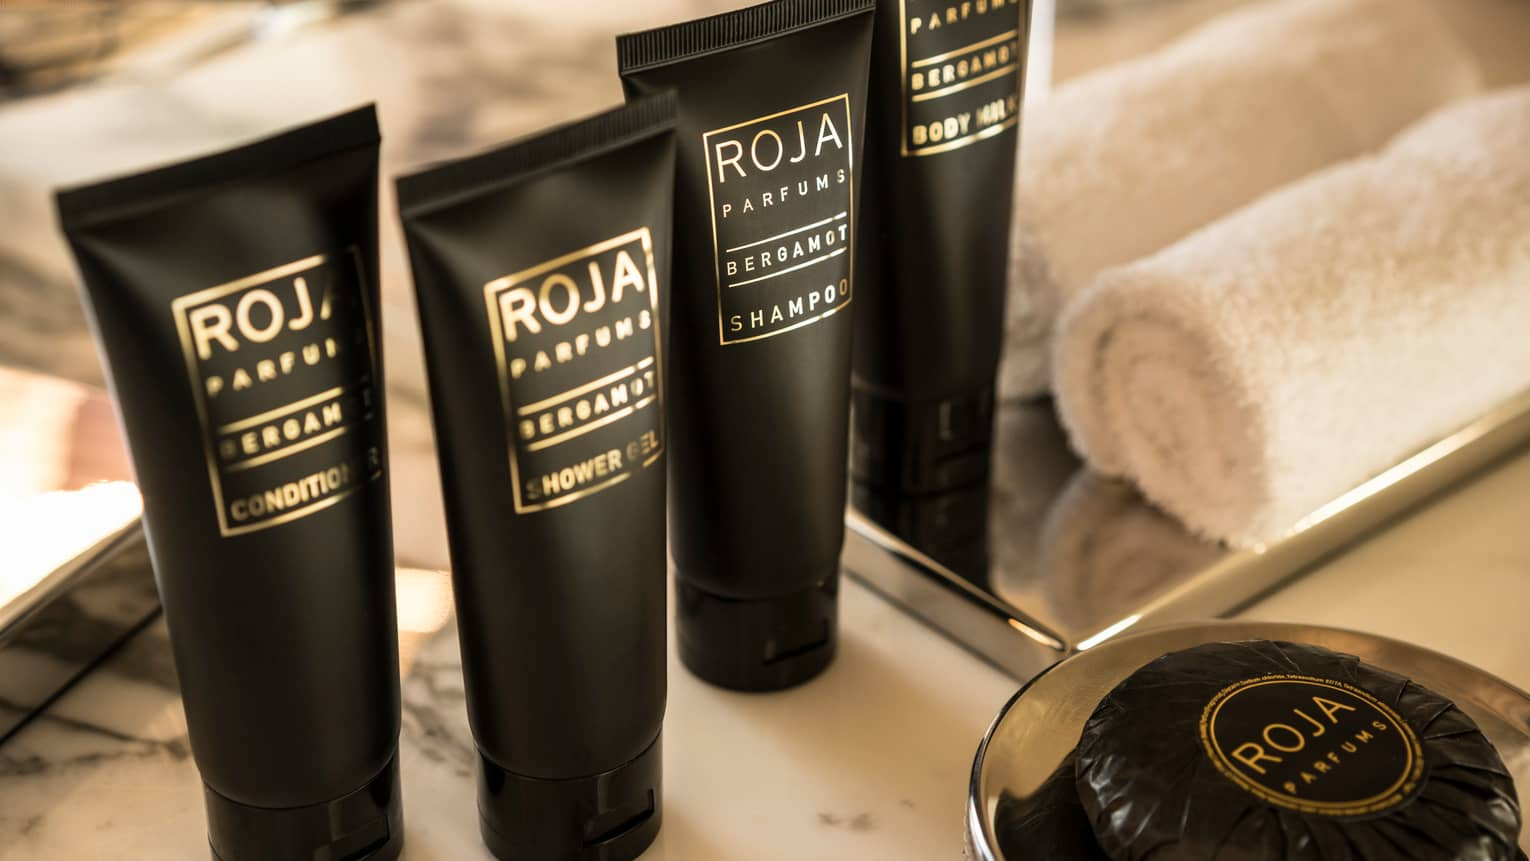 Foru small black bottles with ROJA Parfums gold lettering, toiletry shower gels, soaps